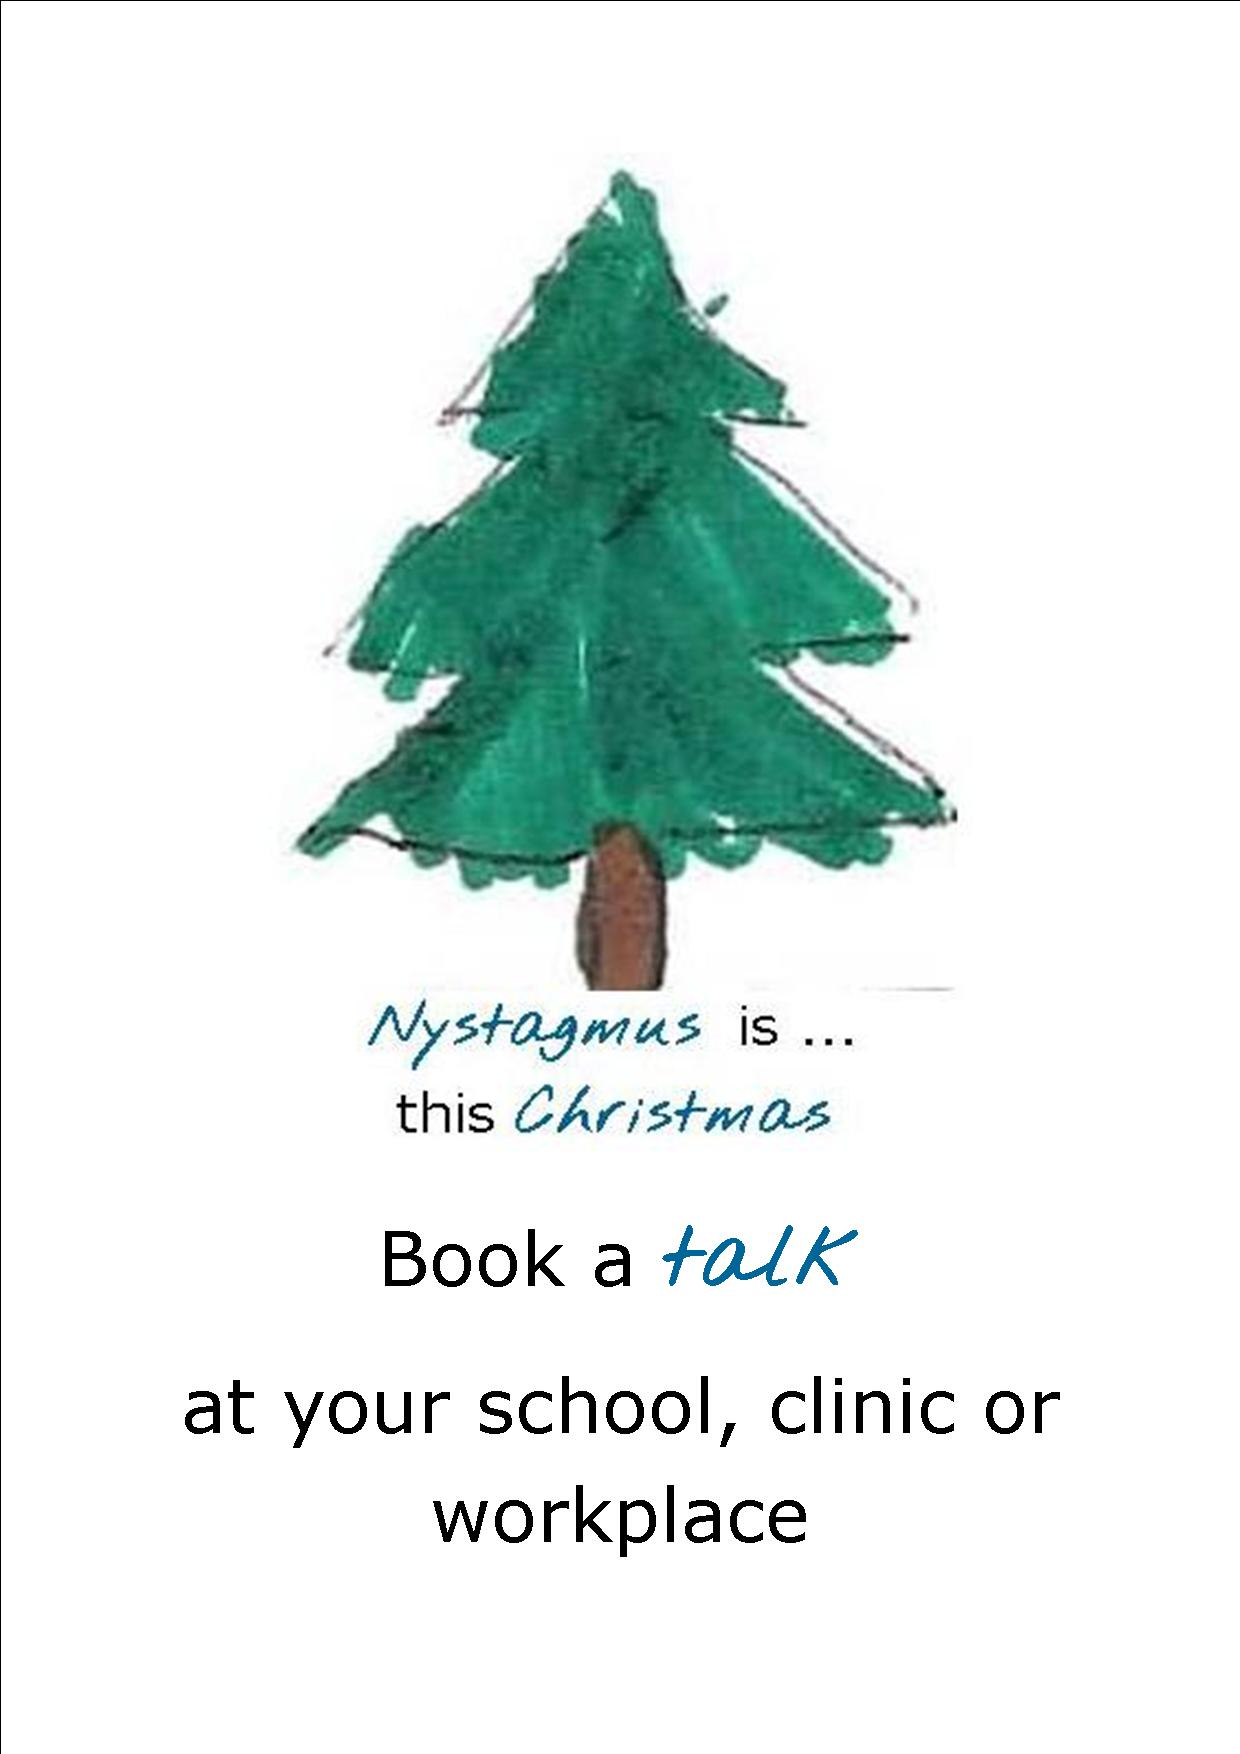 Book a talk about nystagmus